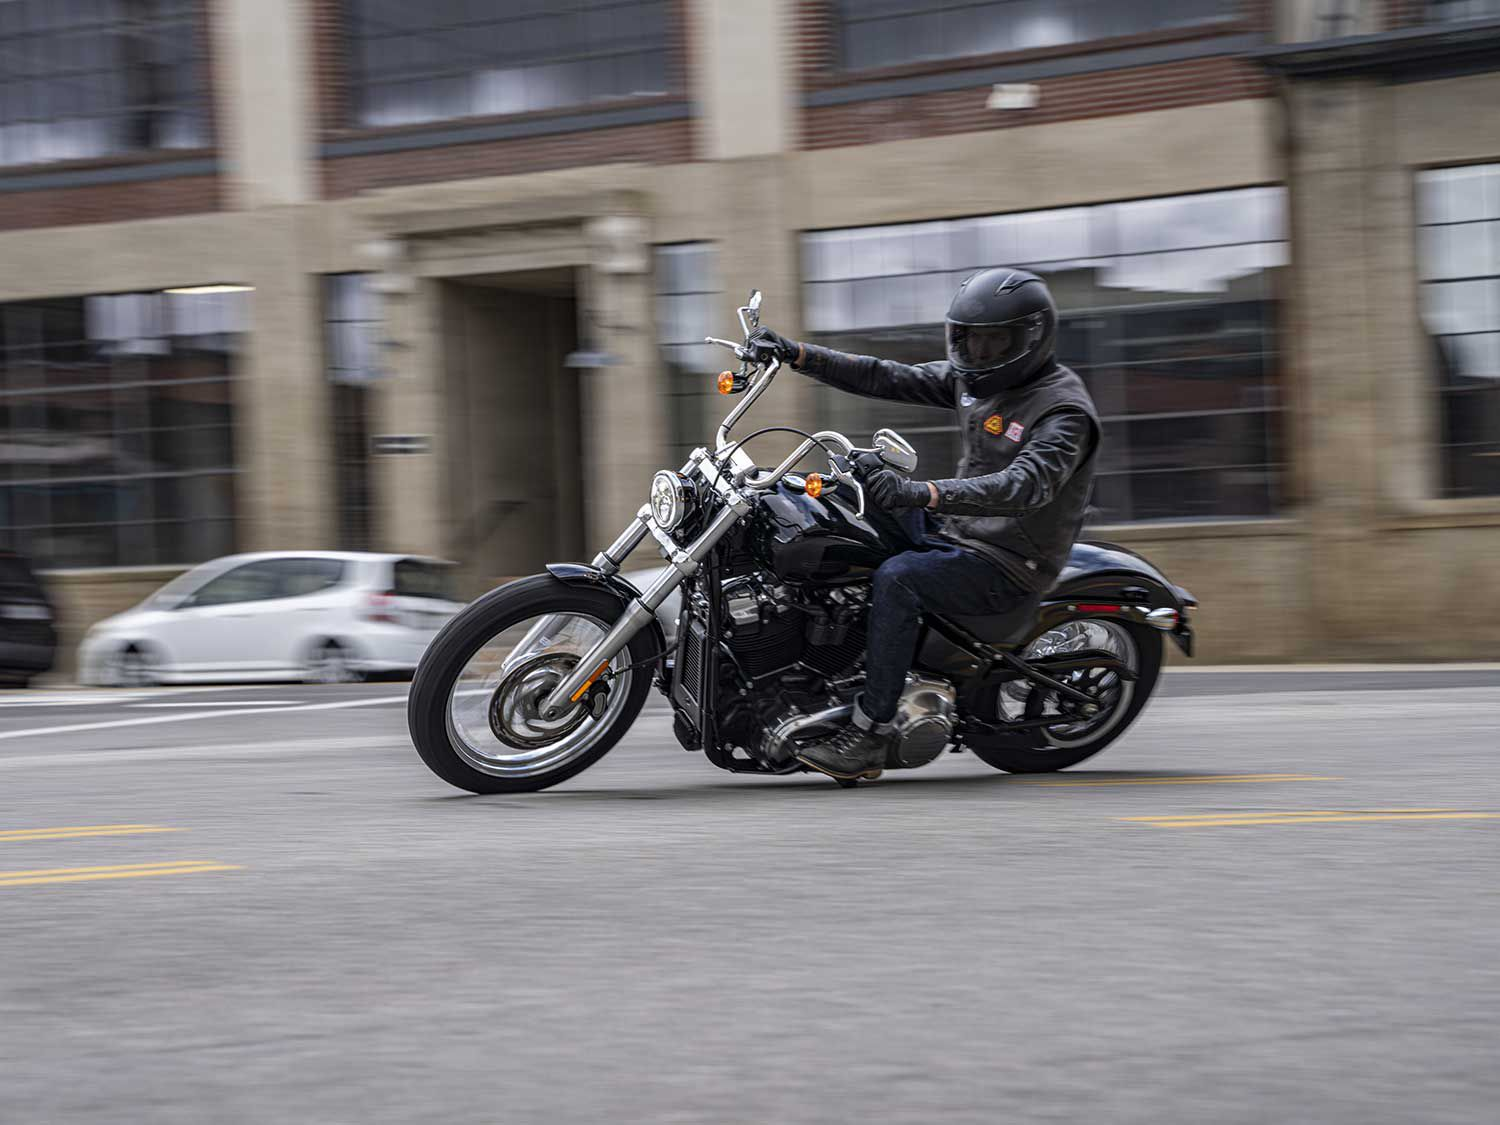 The new Softail Standard starts at $13,599.